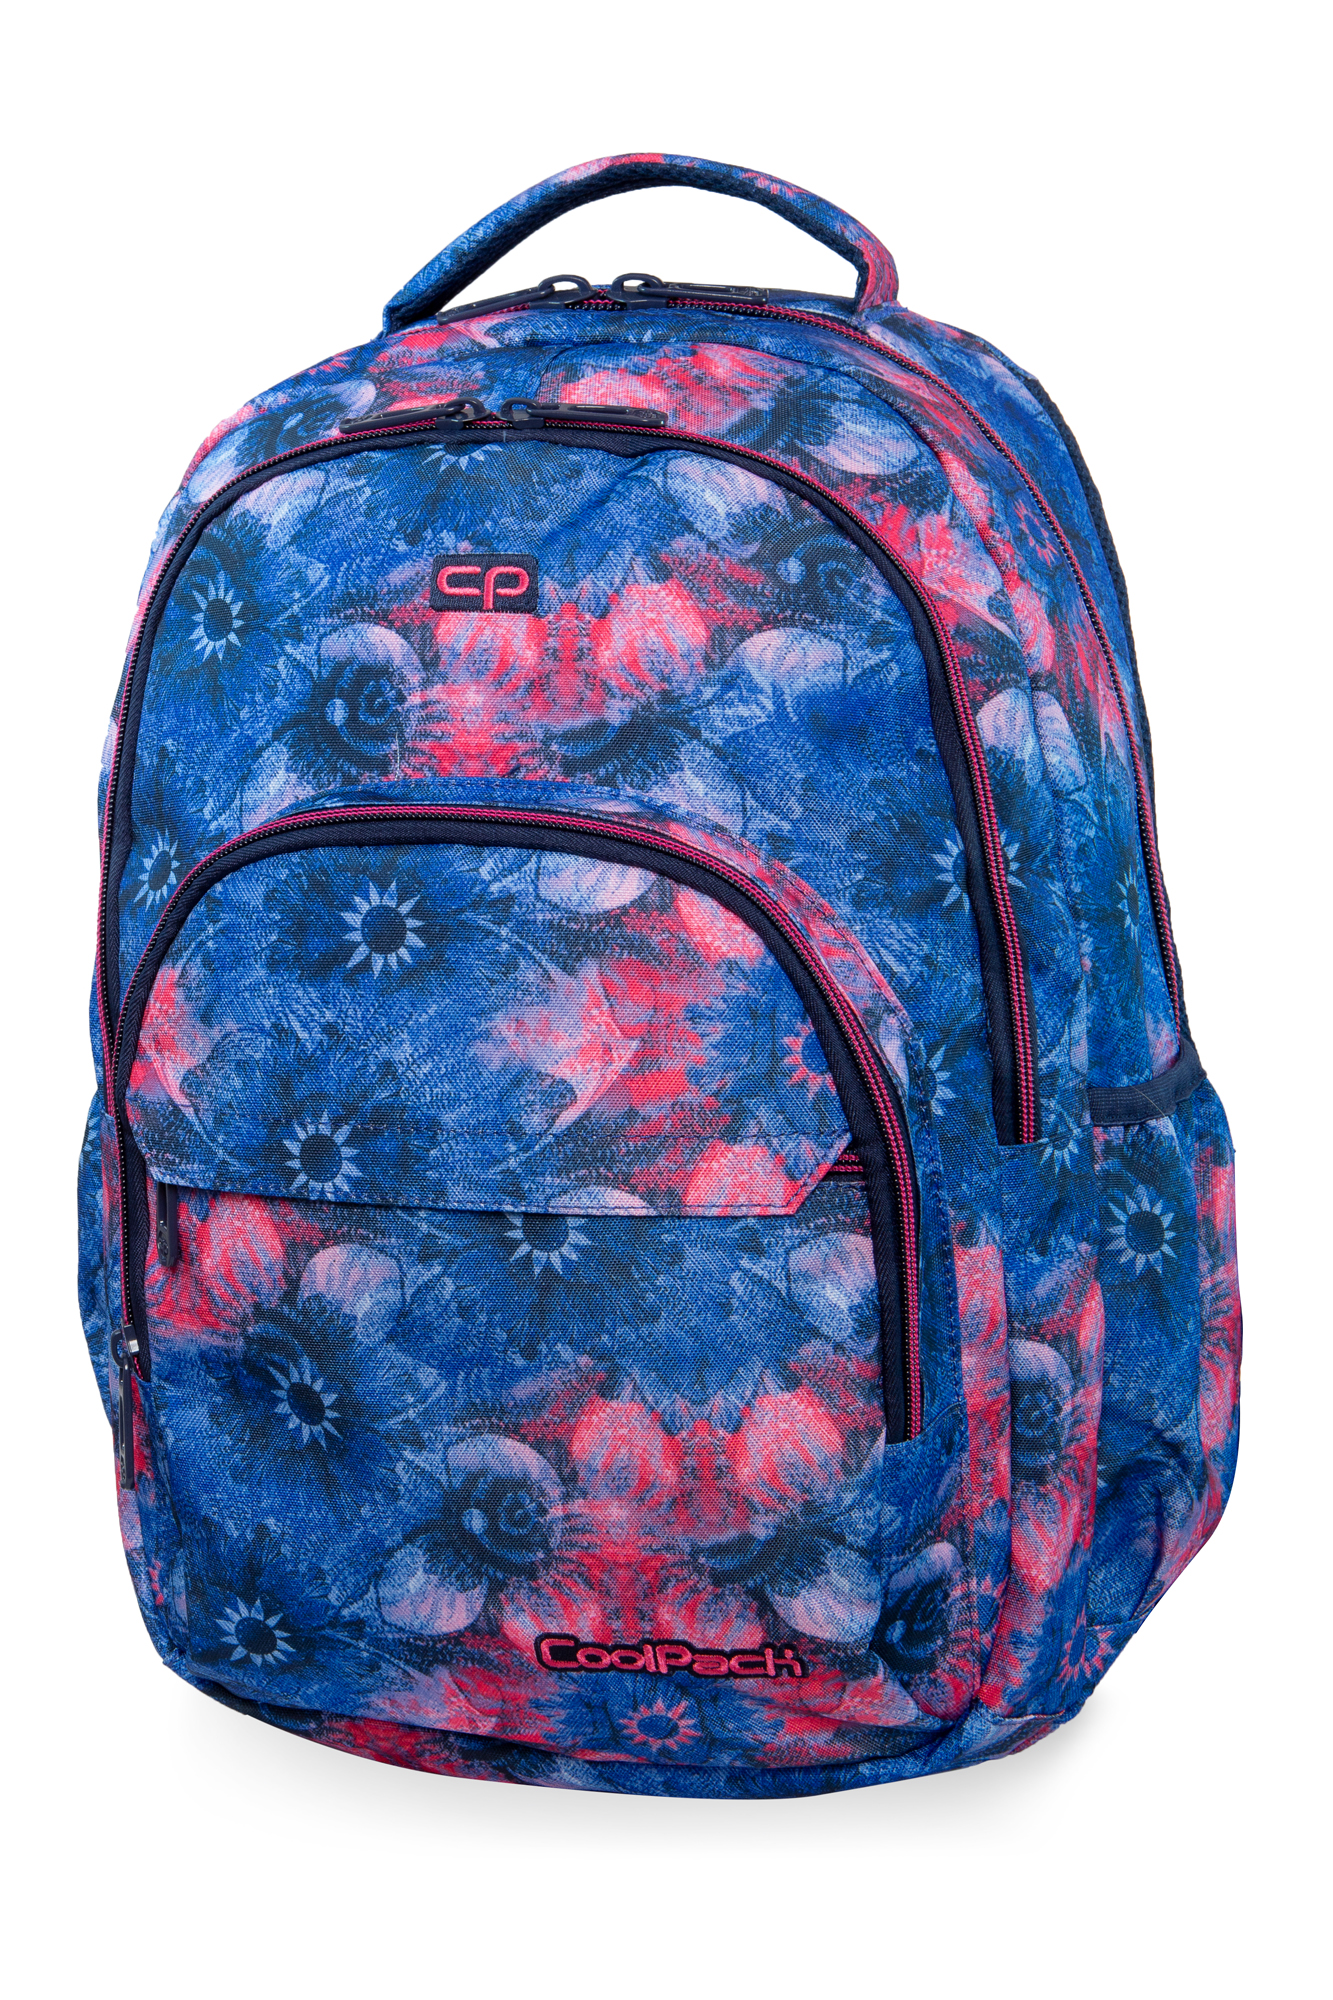 Coolpack - basic plus - youth backpack - pink magnolia